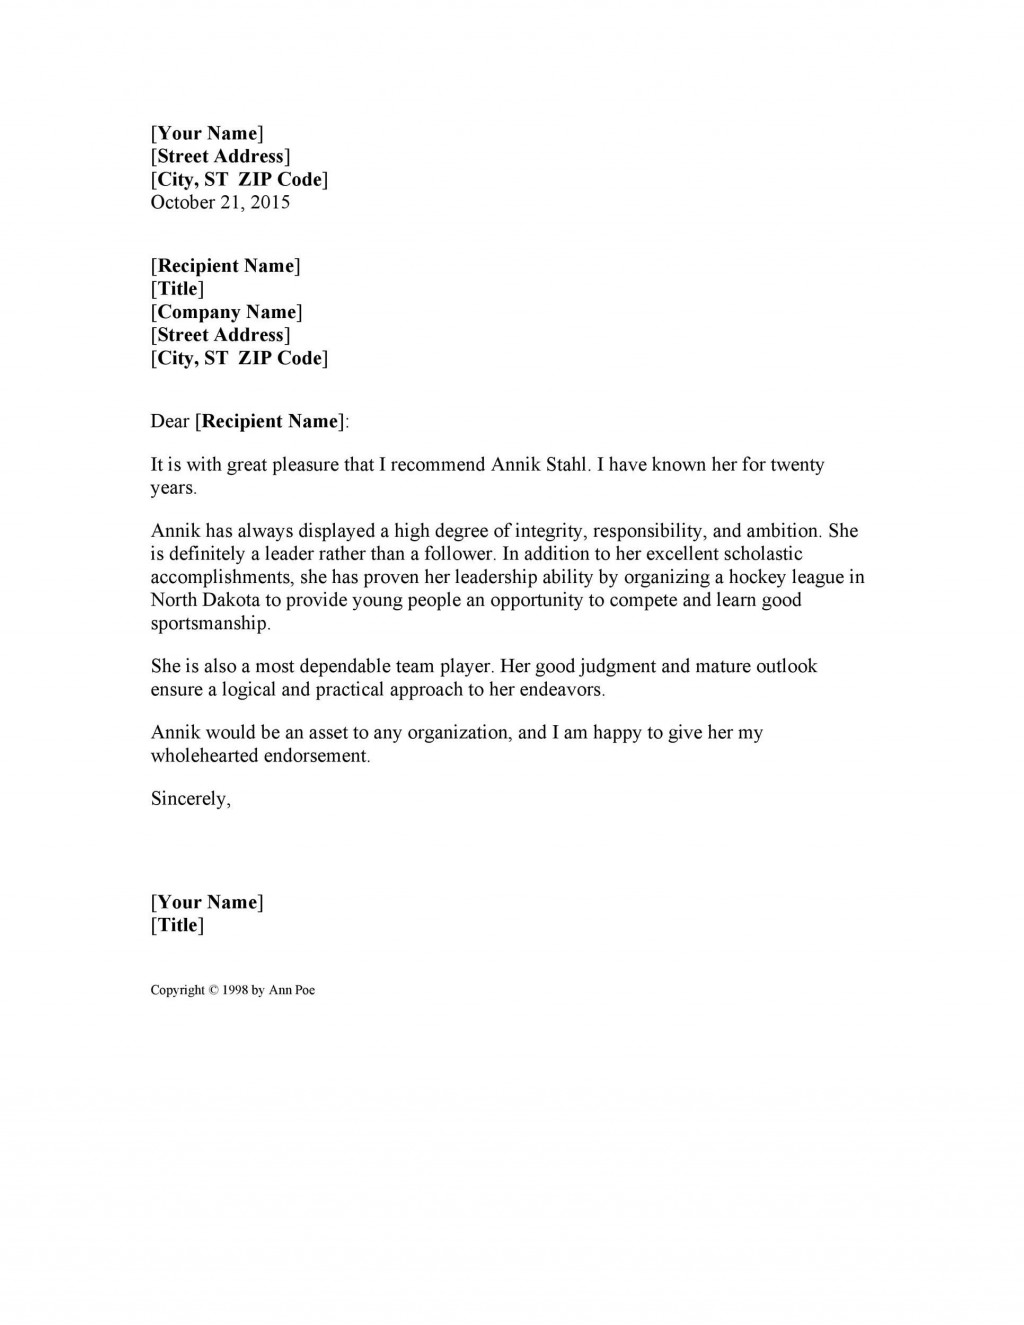 007 Shocking Personal Reference Letter Template Sample  Character Word For Rental ApplicationLarge